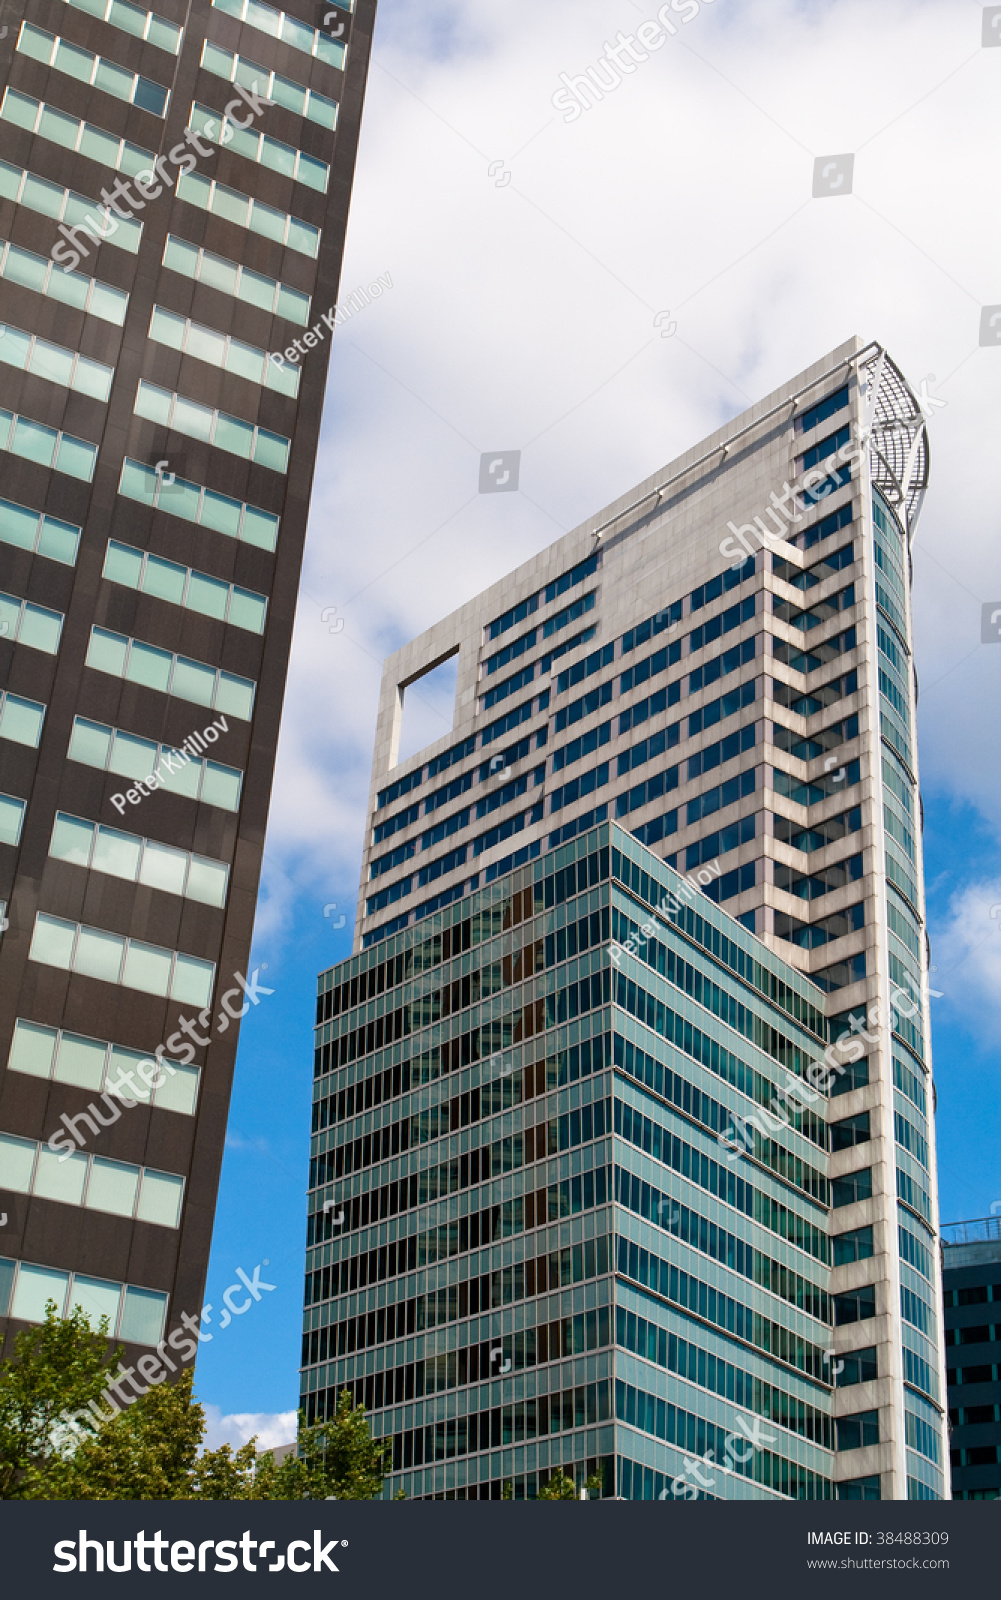 Modern Office Buildings Made With Steel Glass And Mirror Ez Canvas